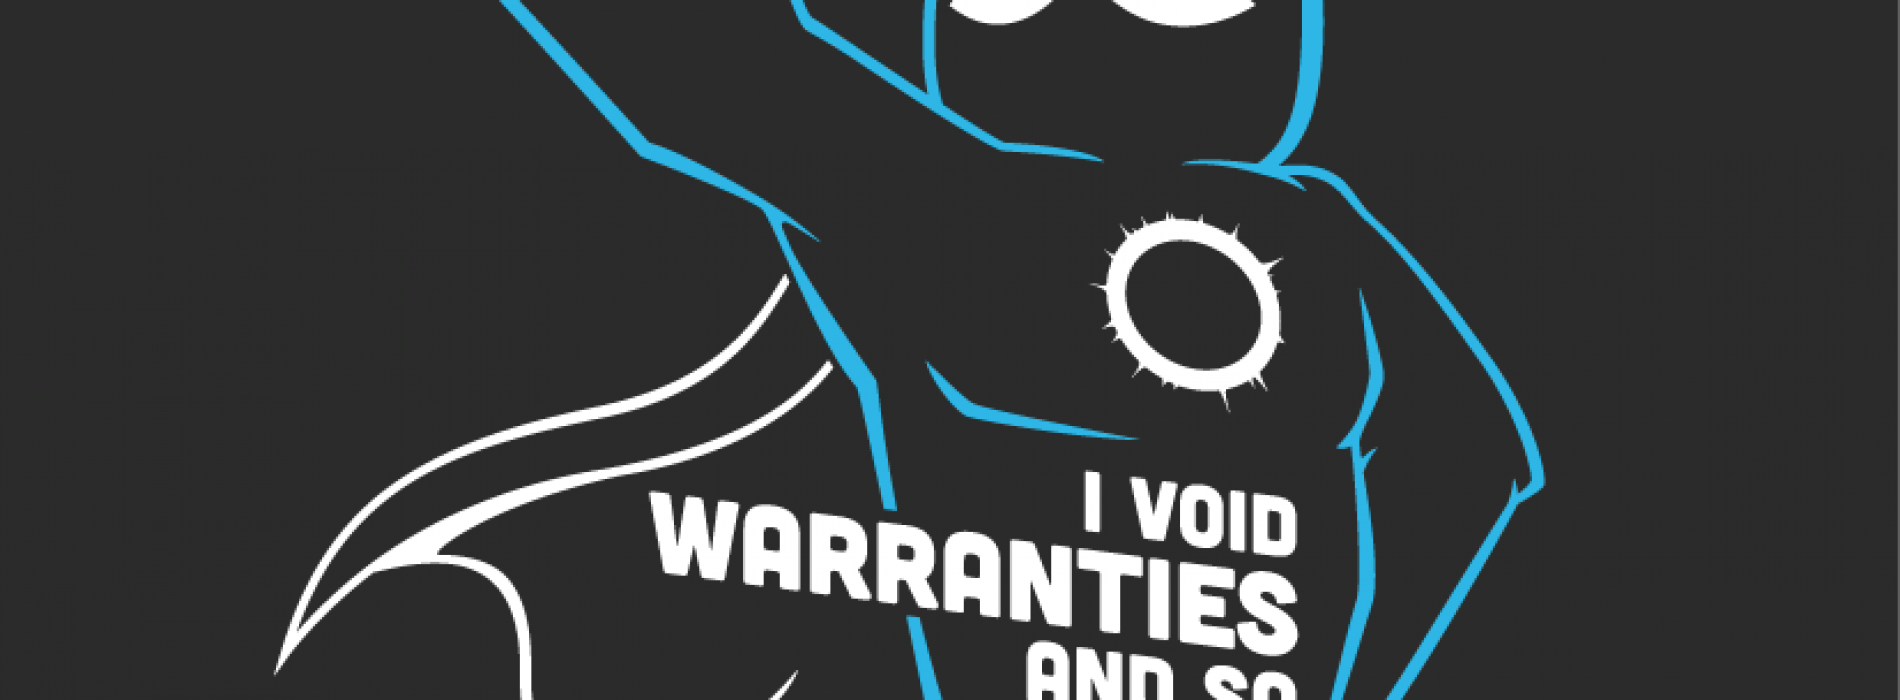 Grab the awesome I VOID WARRANTIES shirt from CyanogenMod today!